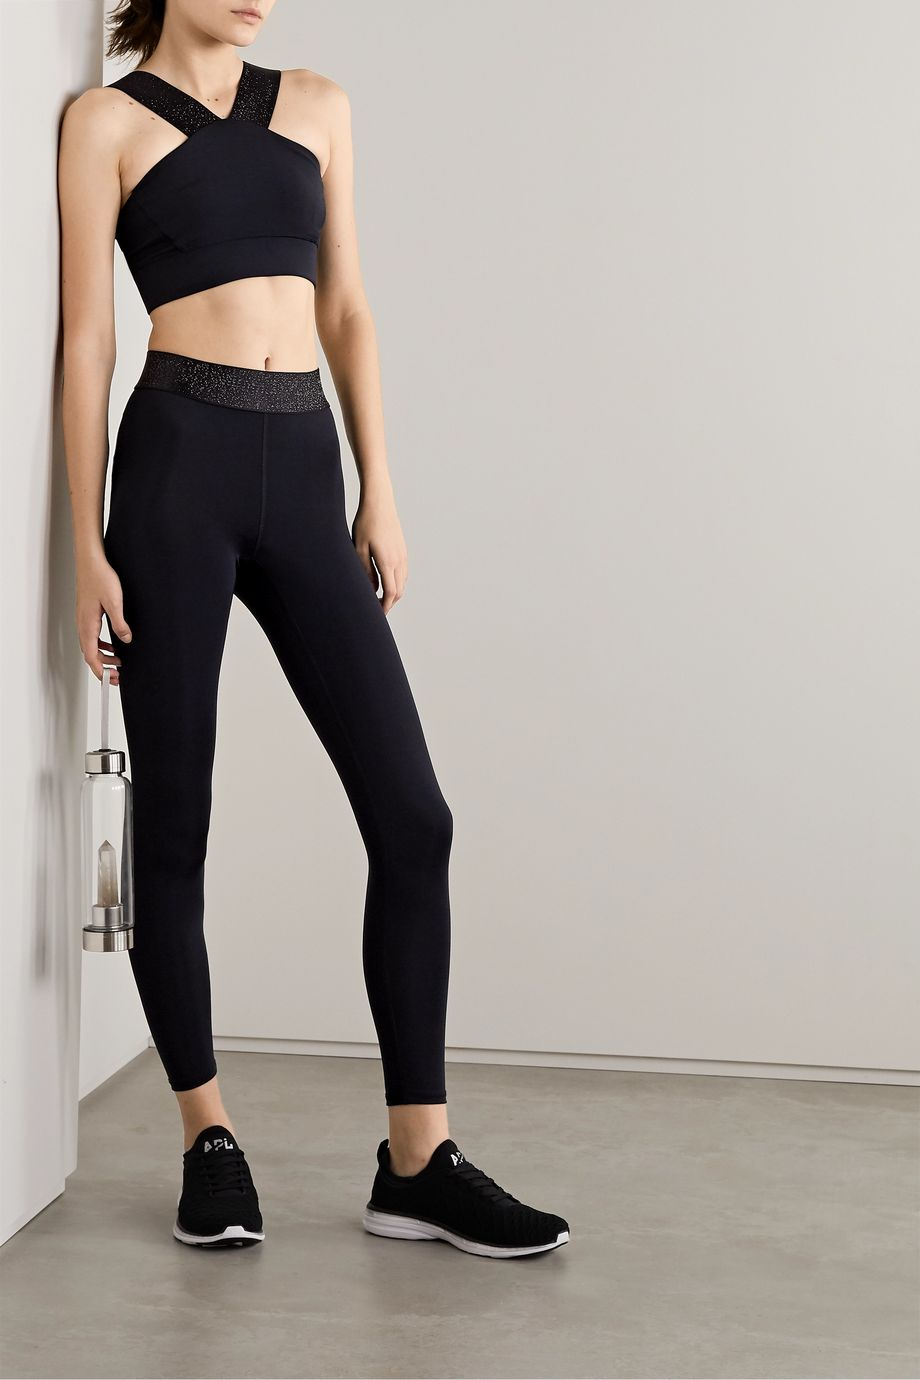 Heroine Sport Twilight stretch and Lurex leggings